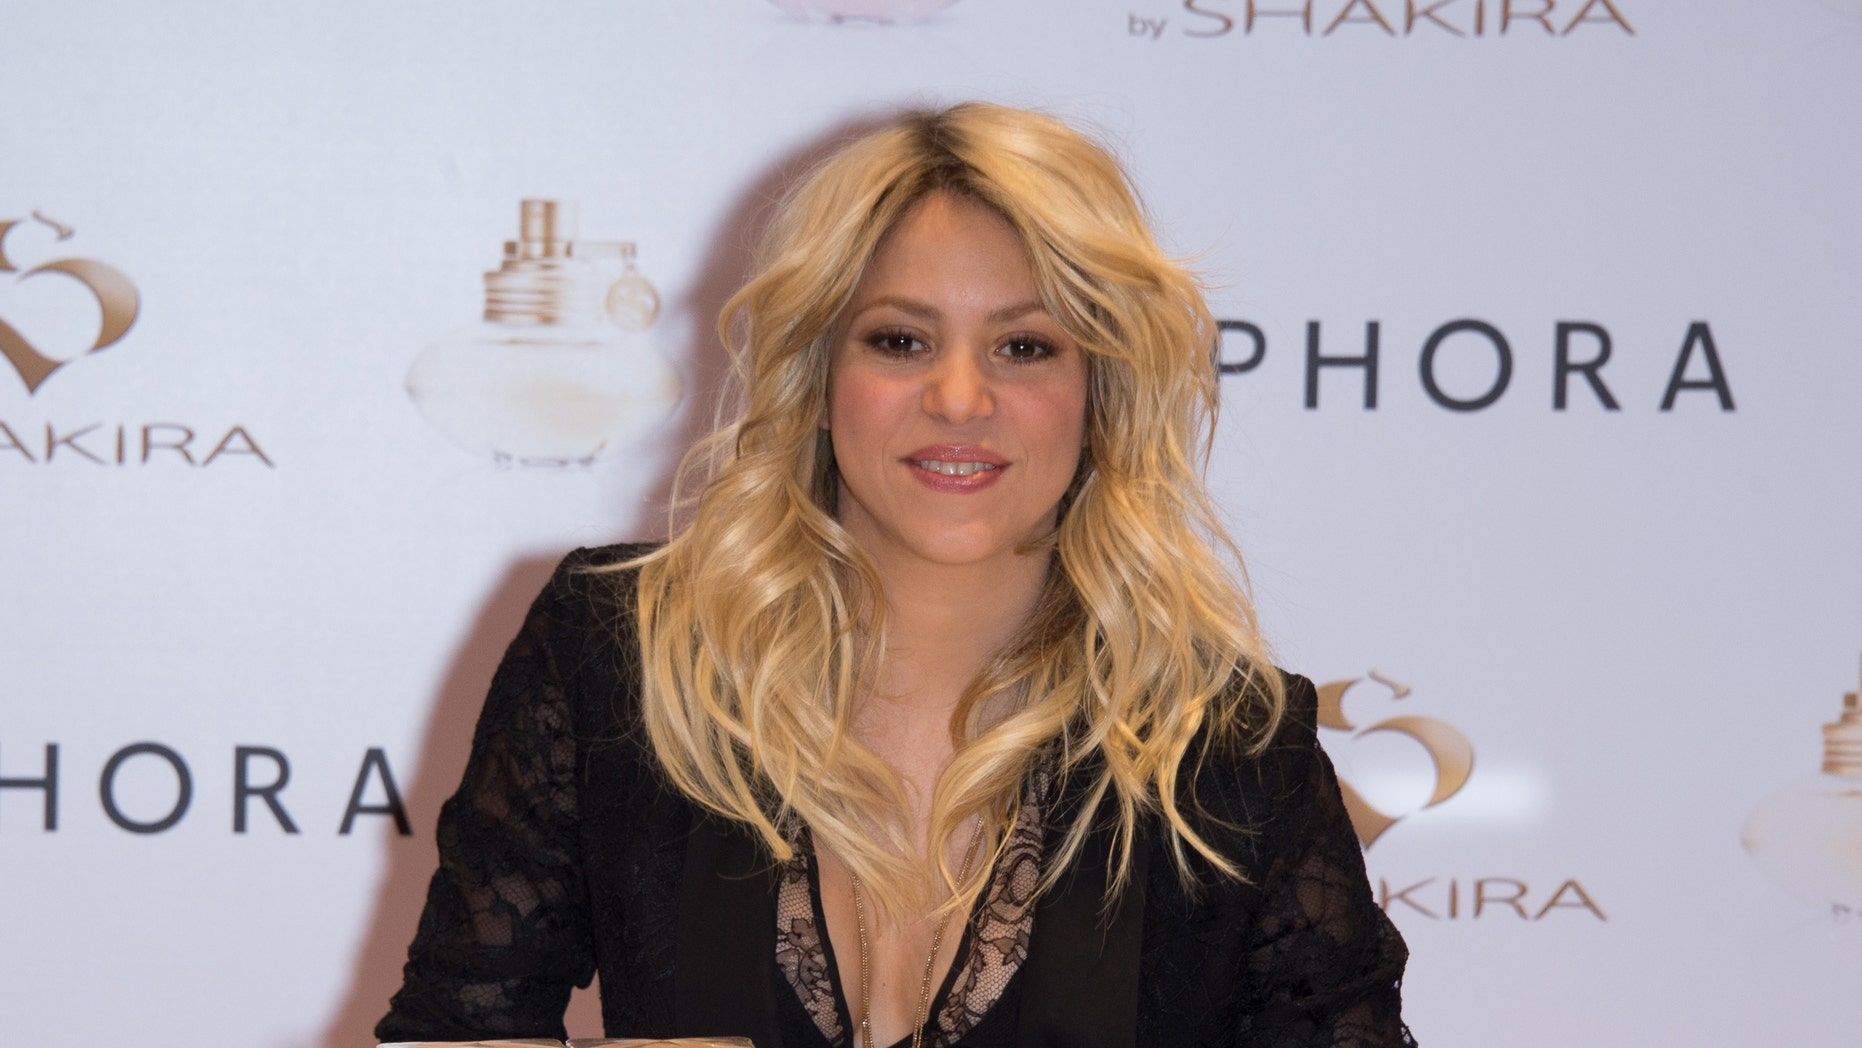 Shakira attends the 'S By Shakira' Perfume Launch at Sephora Champs-Elysees on March 27, 2013 in Paris, France.